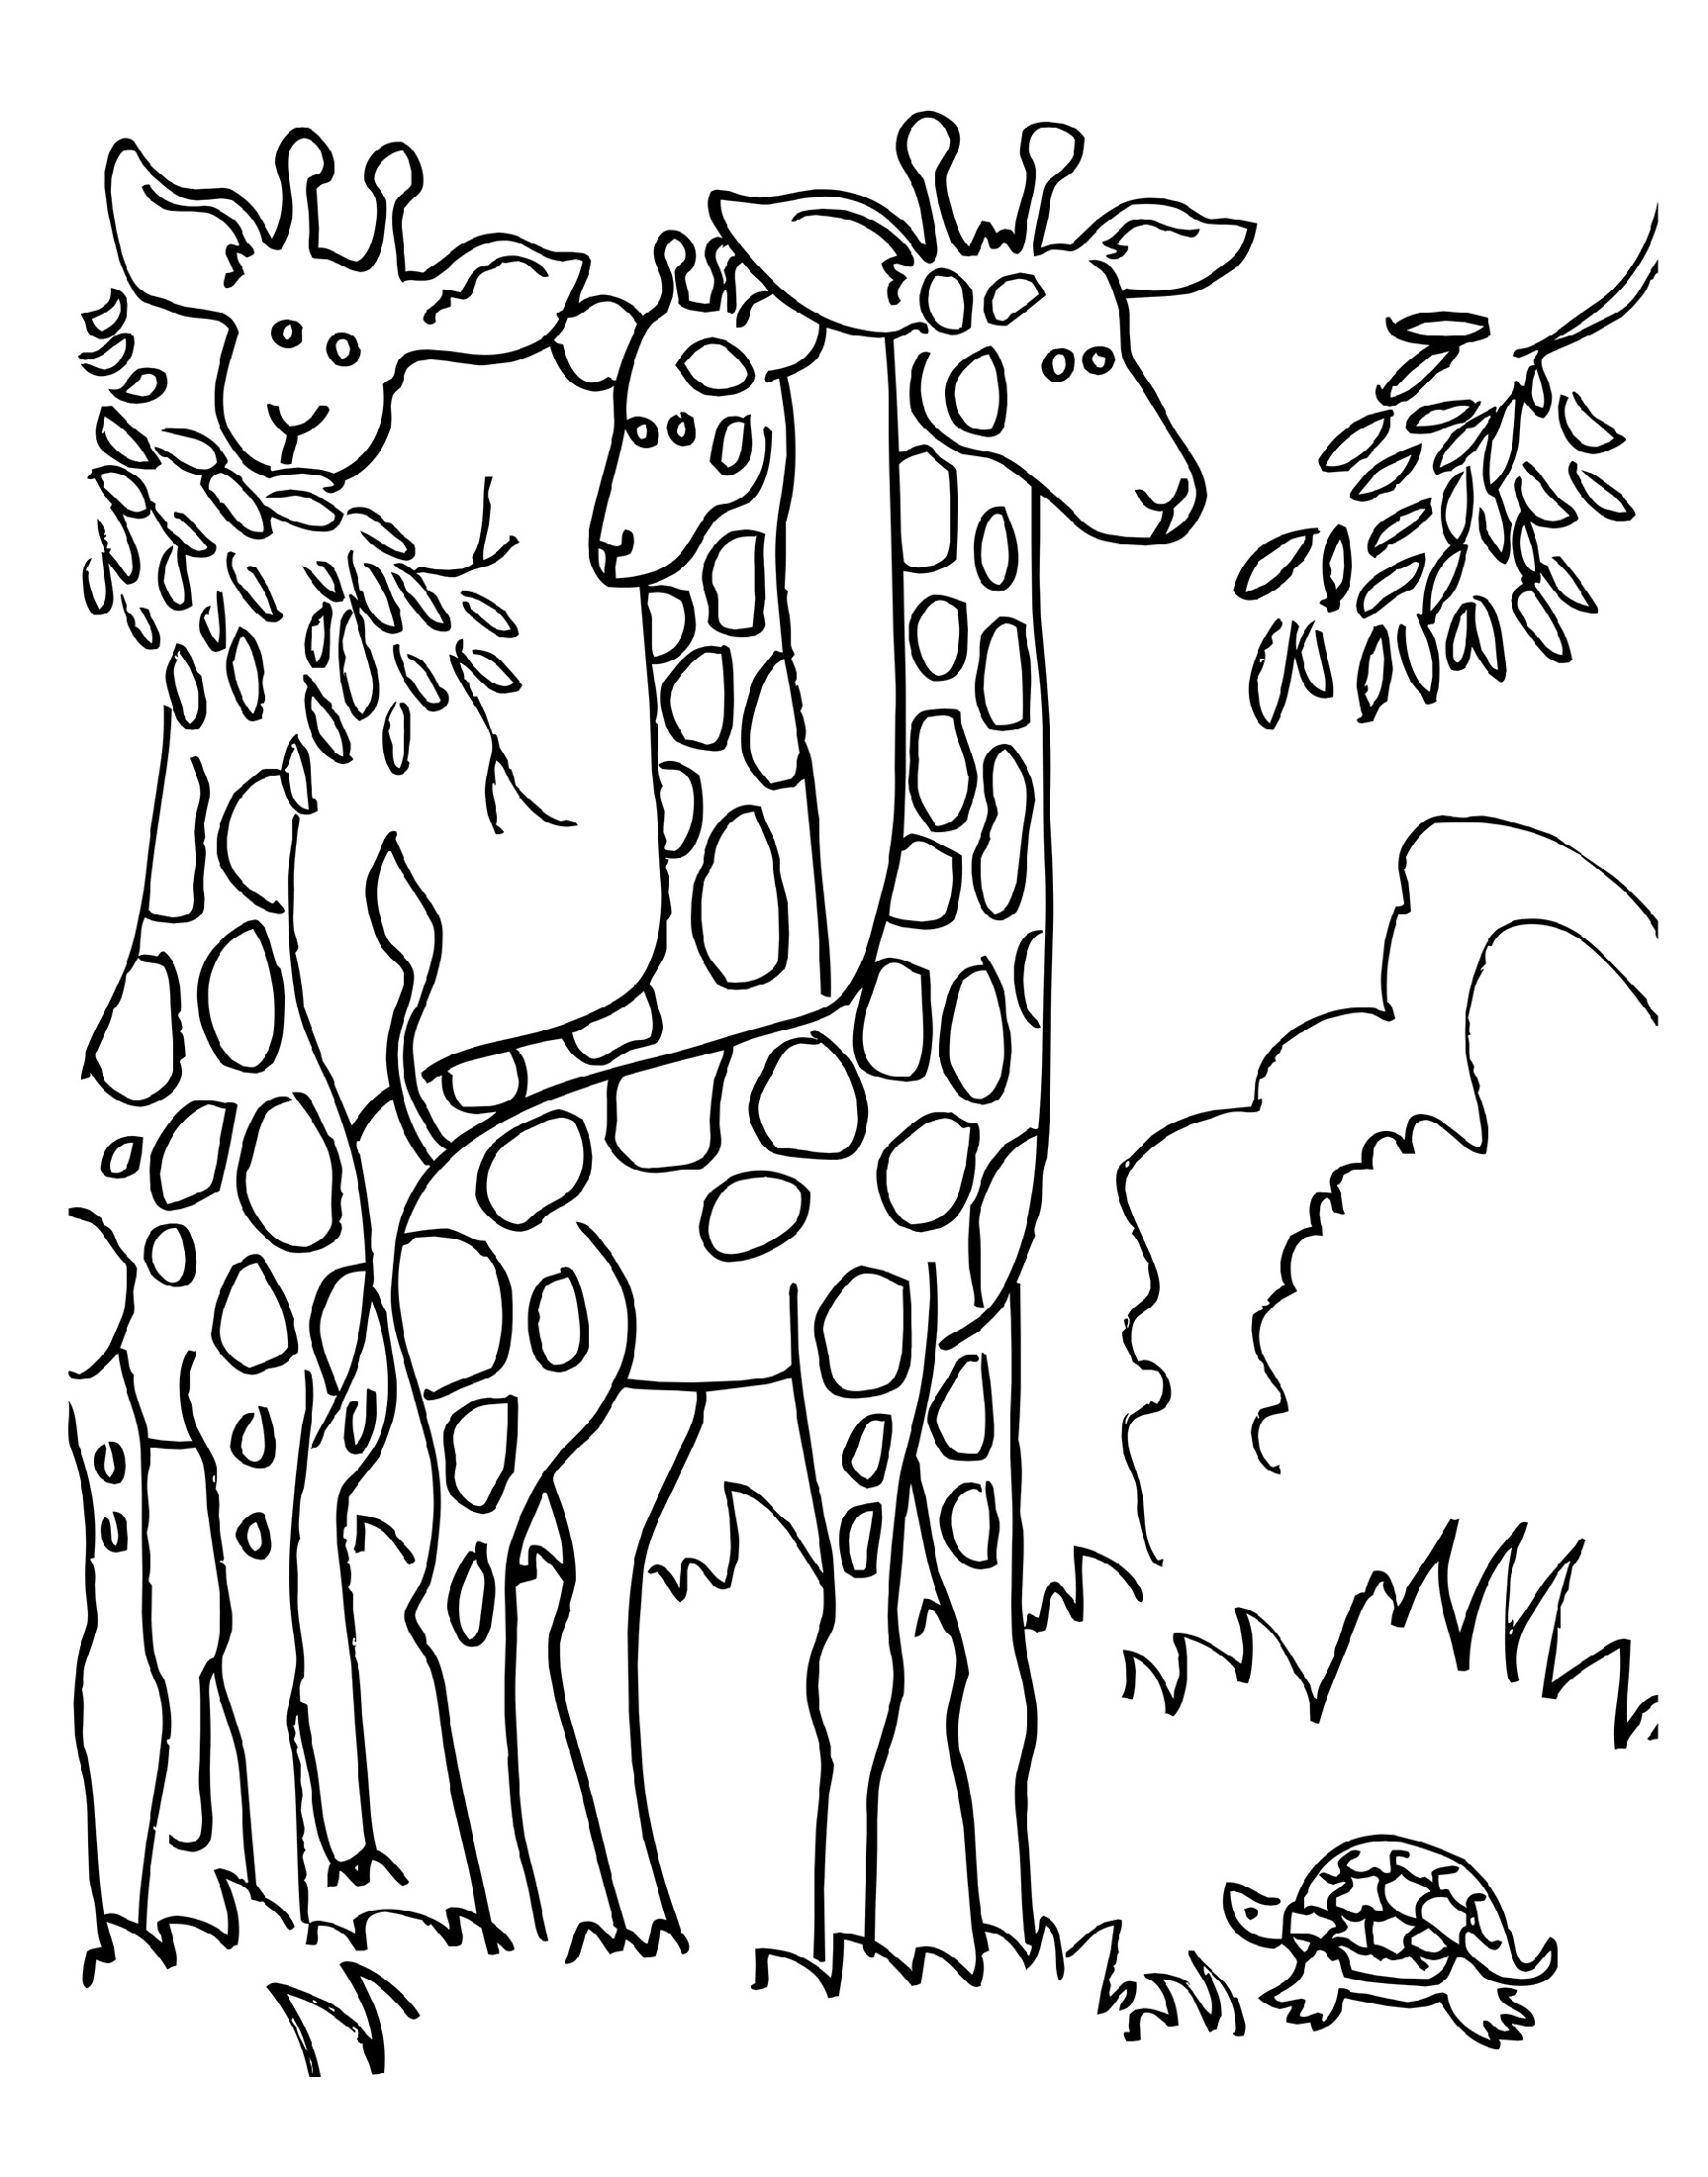 giraffe coloring image giraffe coloring pages to print 101 coloring image giraffe coloring